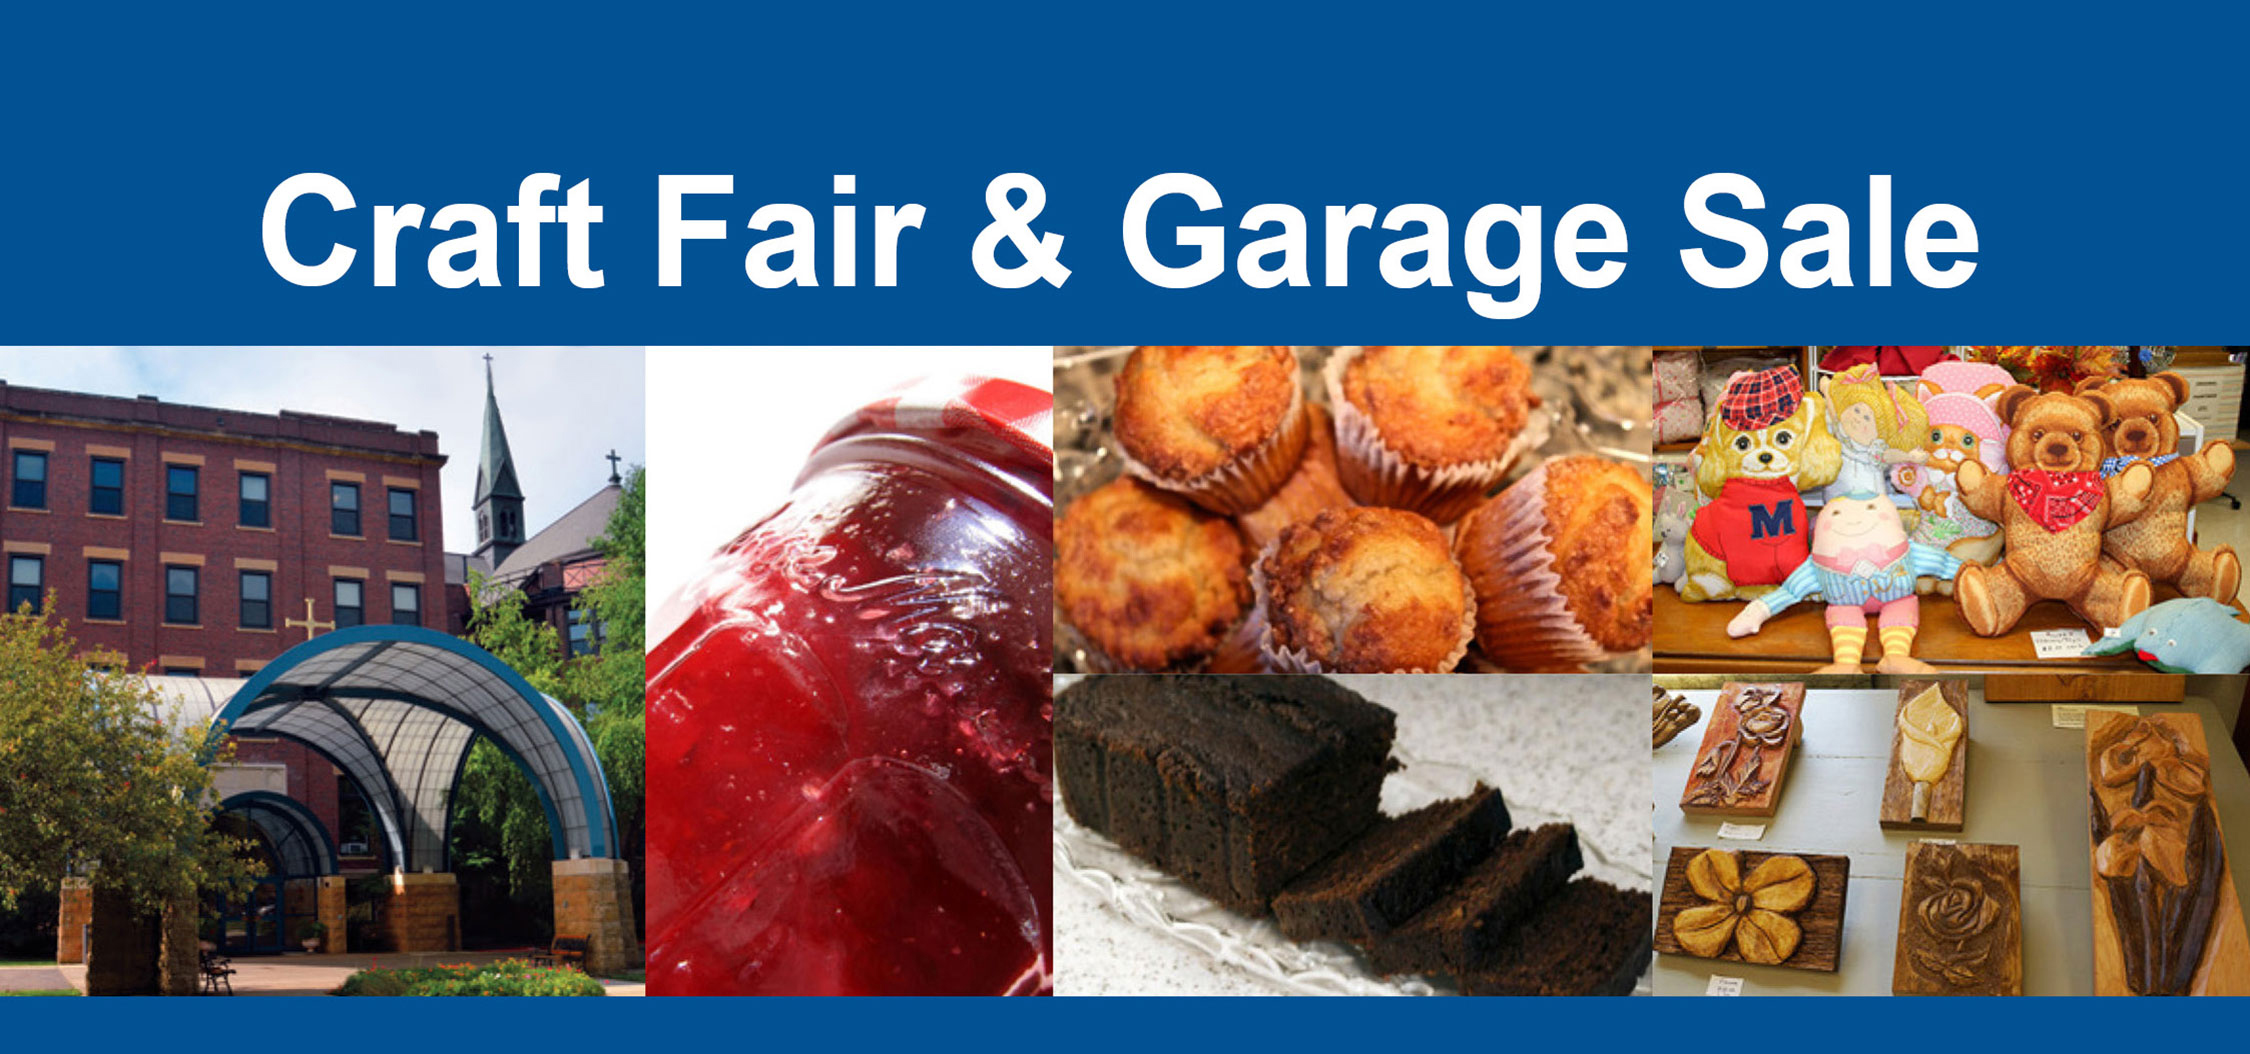 Craft Fair & Garage Sale